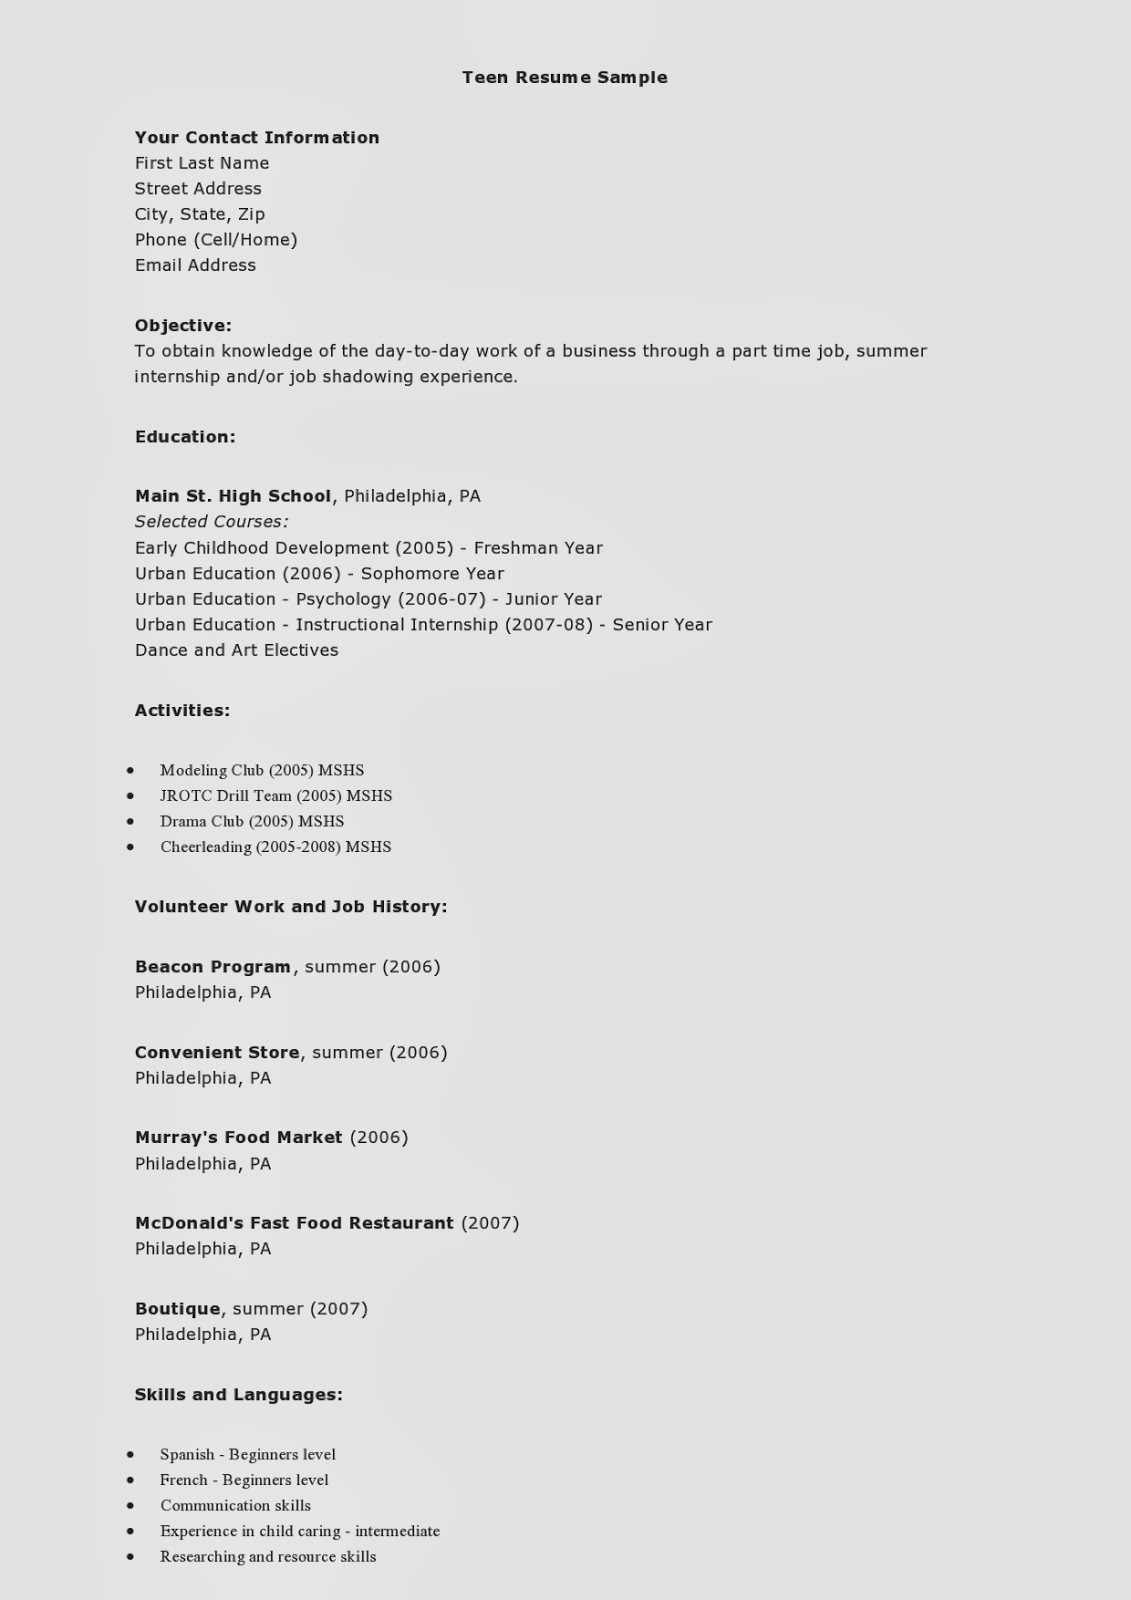 Resume Templates For Teens Teenager Resume Sample Search Results Calendar 2015